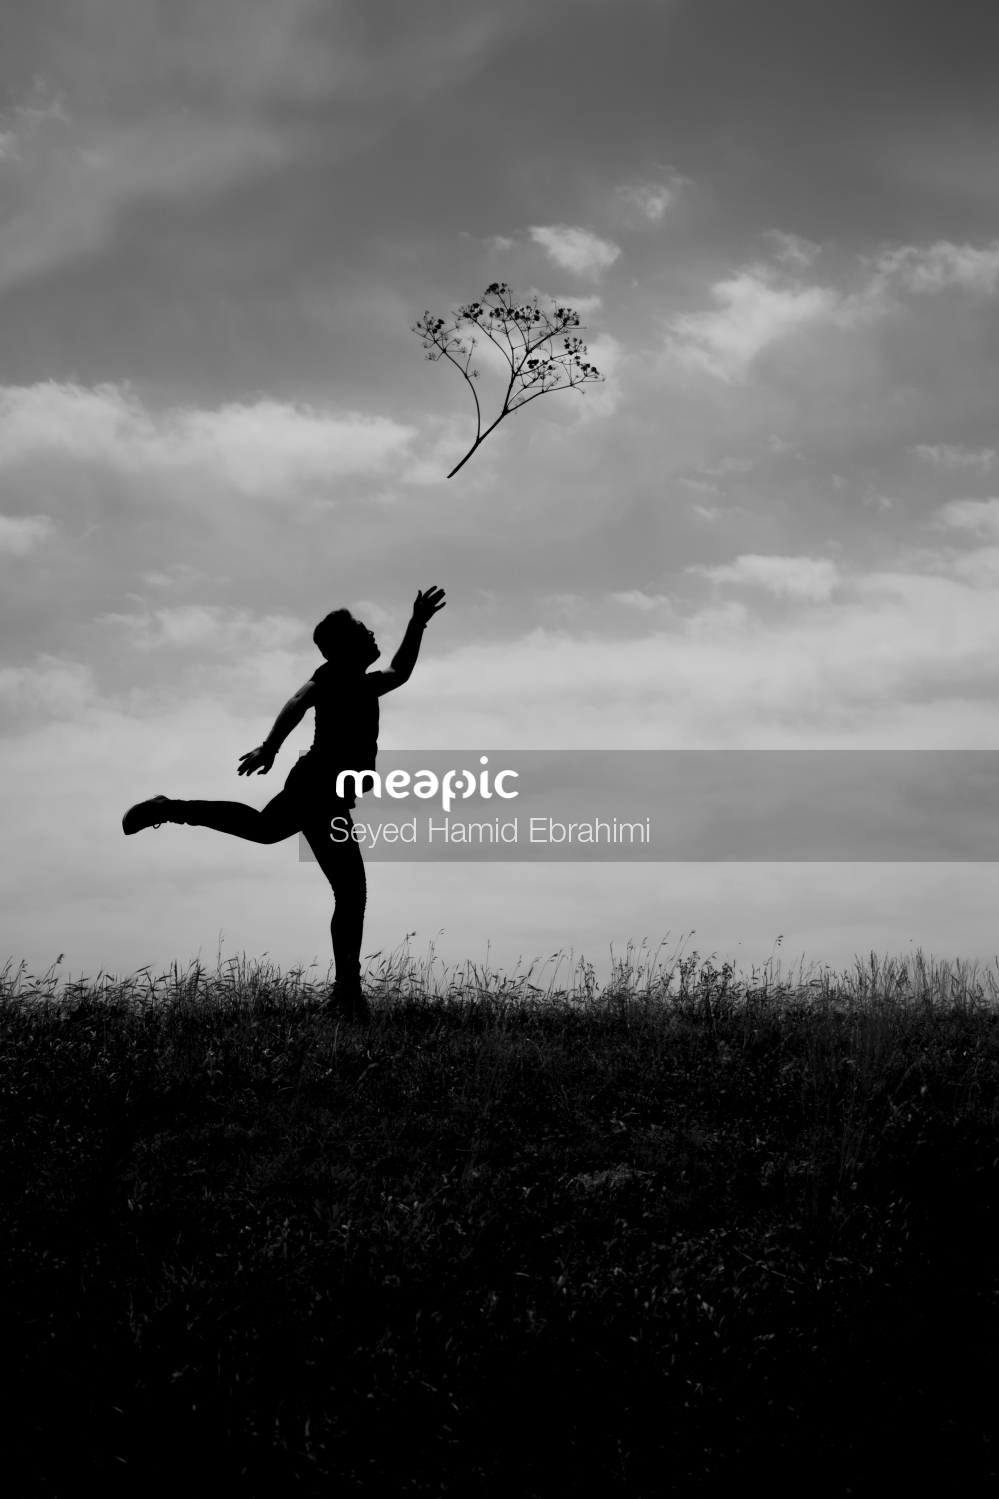 Person Flying Through The Air On A Cloudy Day Stock Photo · Meapic